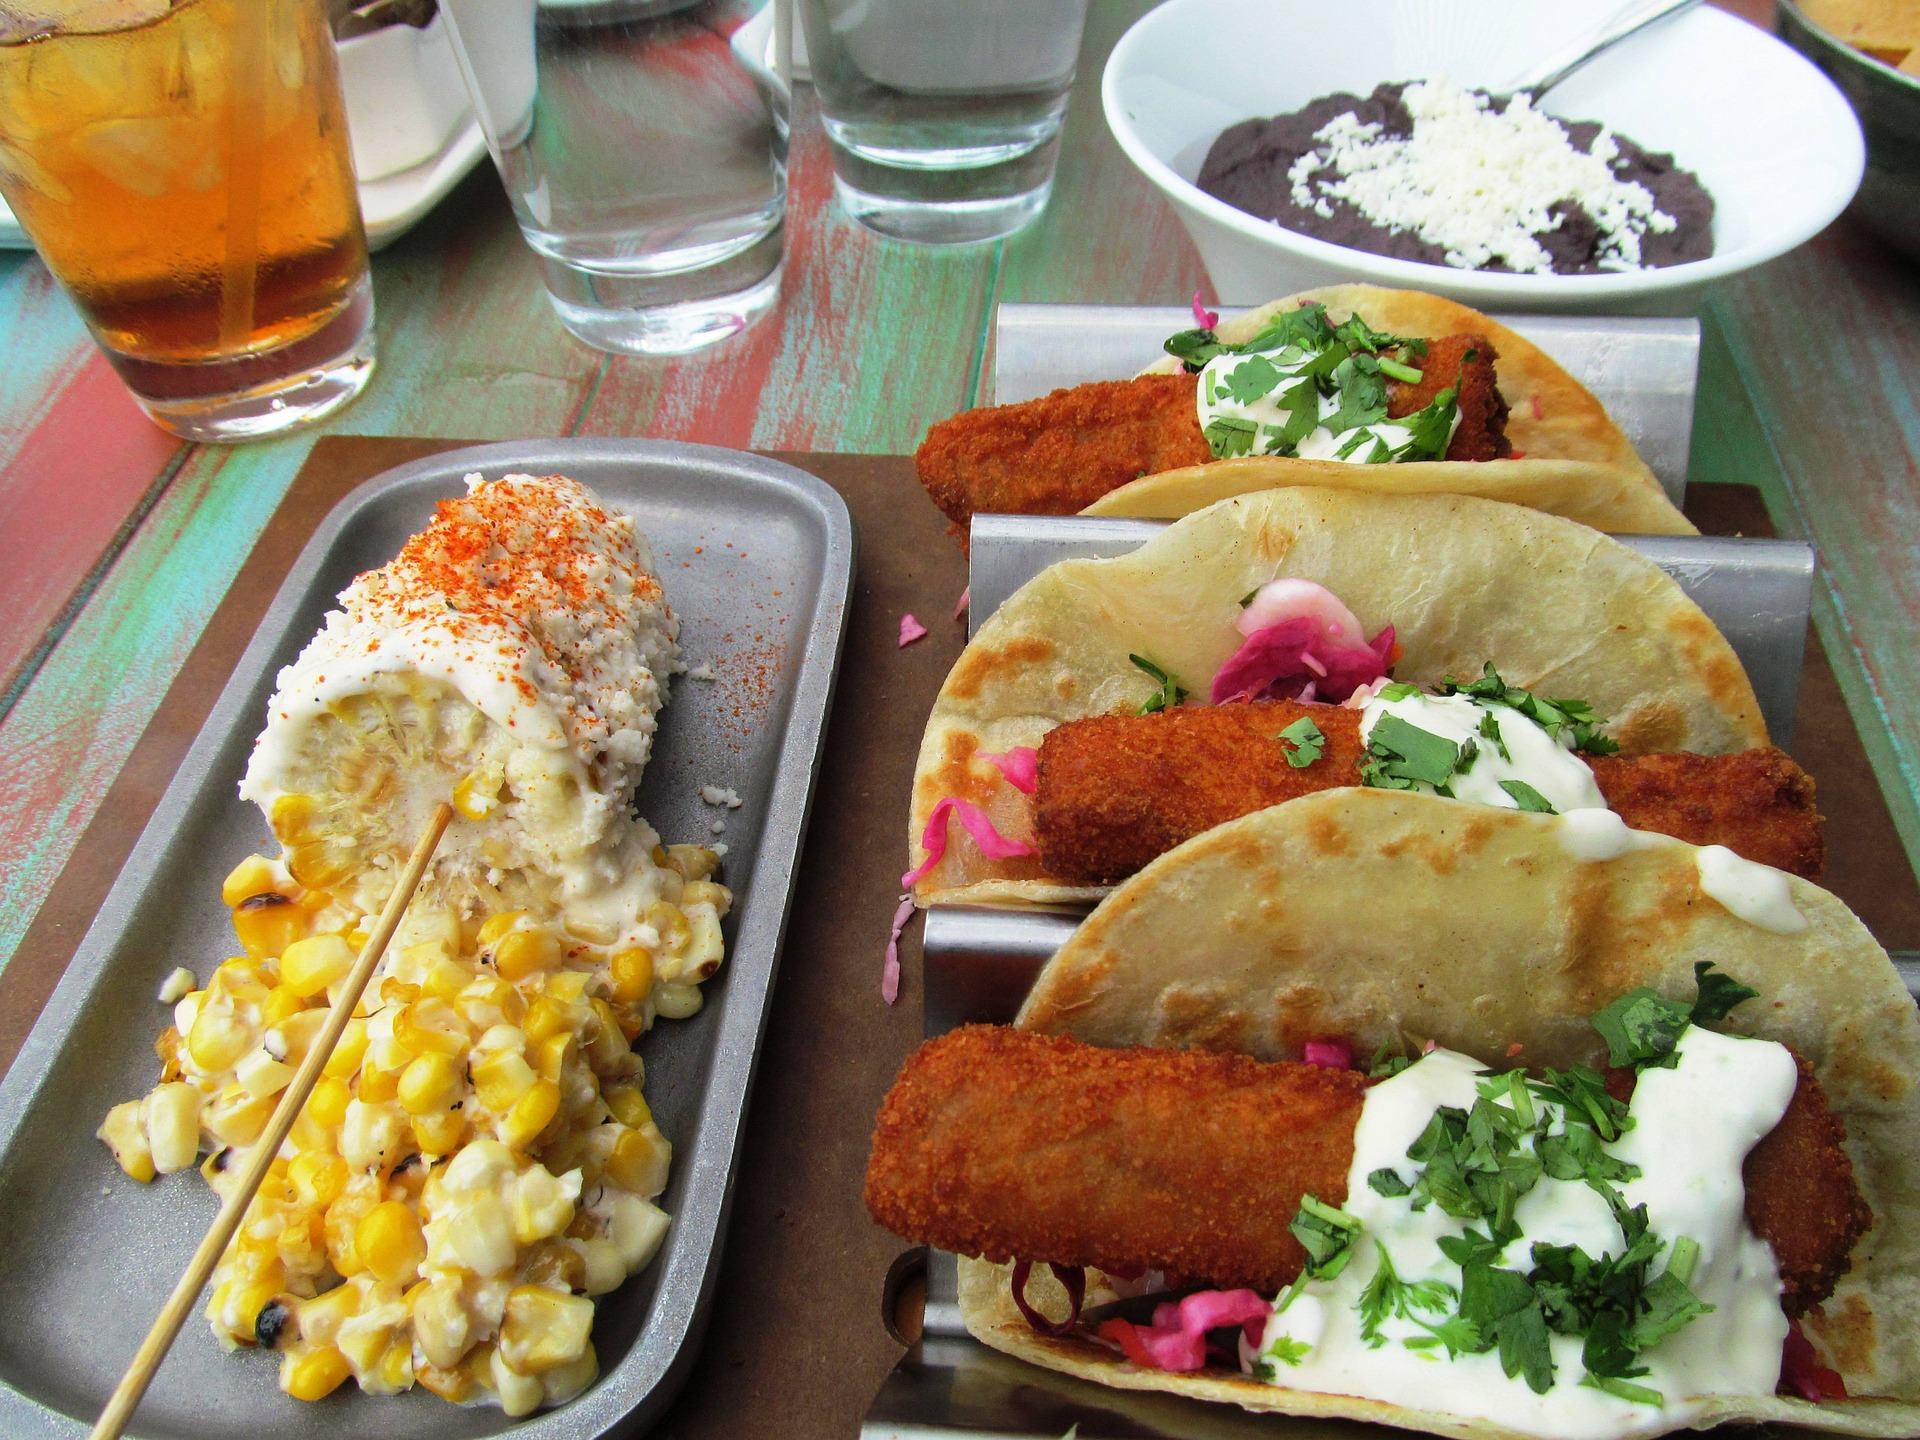 Try one of The Friendly Spot's many delicious tacos  while relaxing in the afternoon sun.